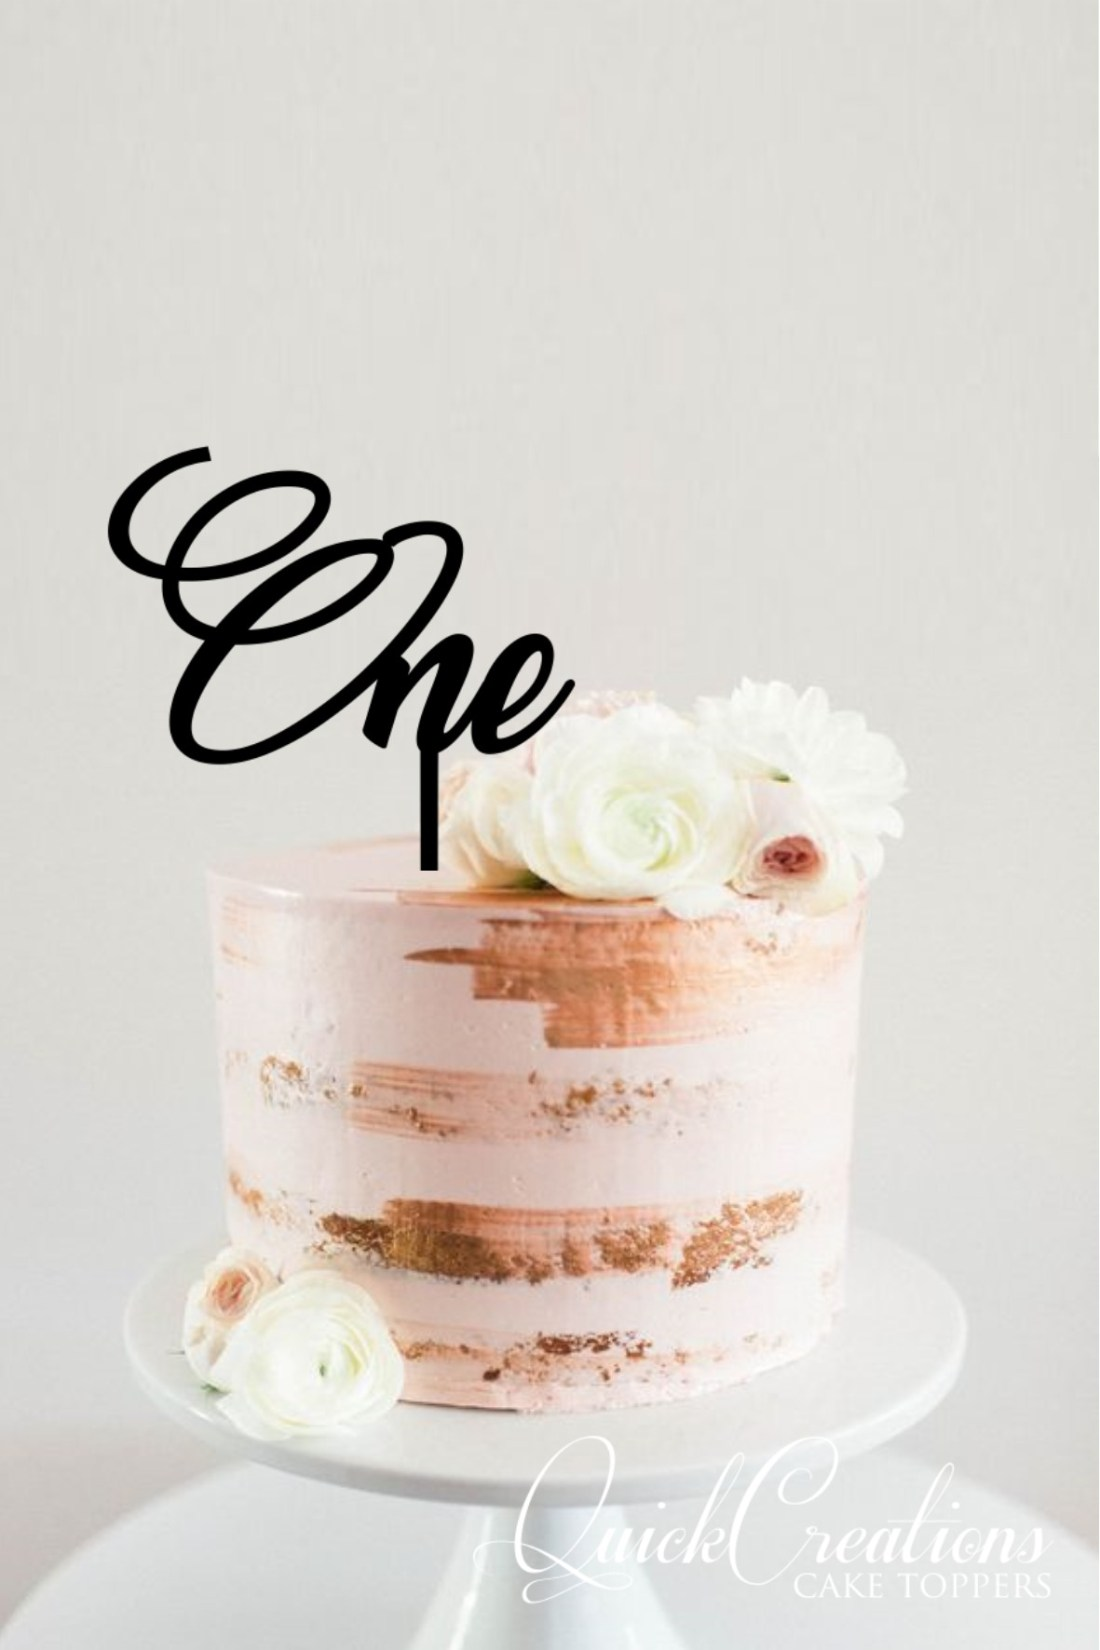 Quick Creations Cake Topper - One